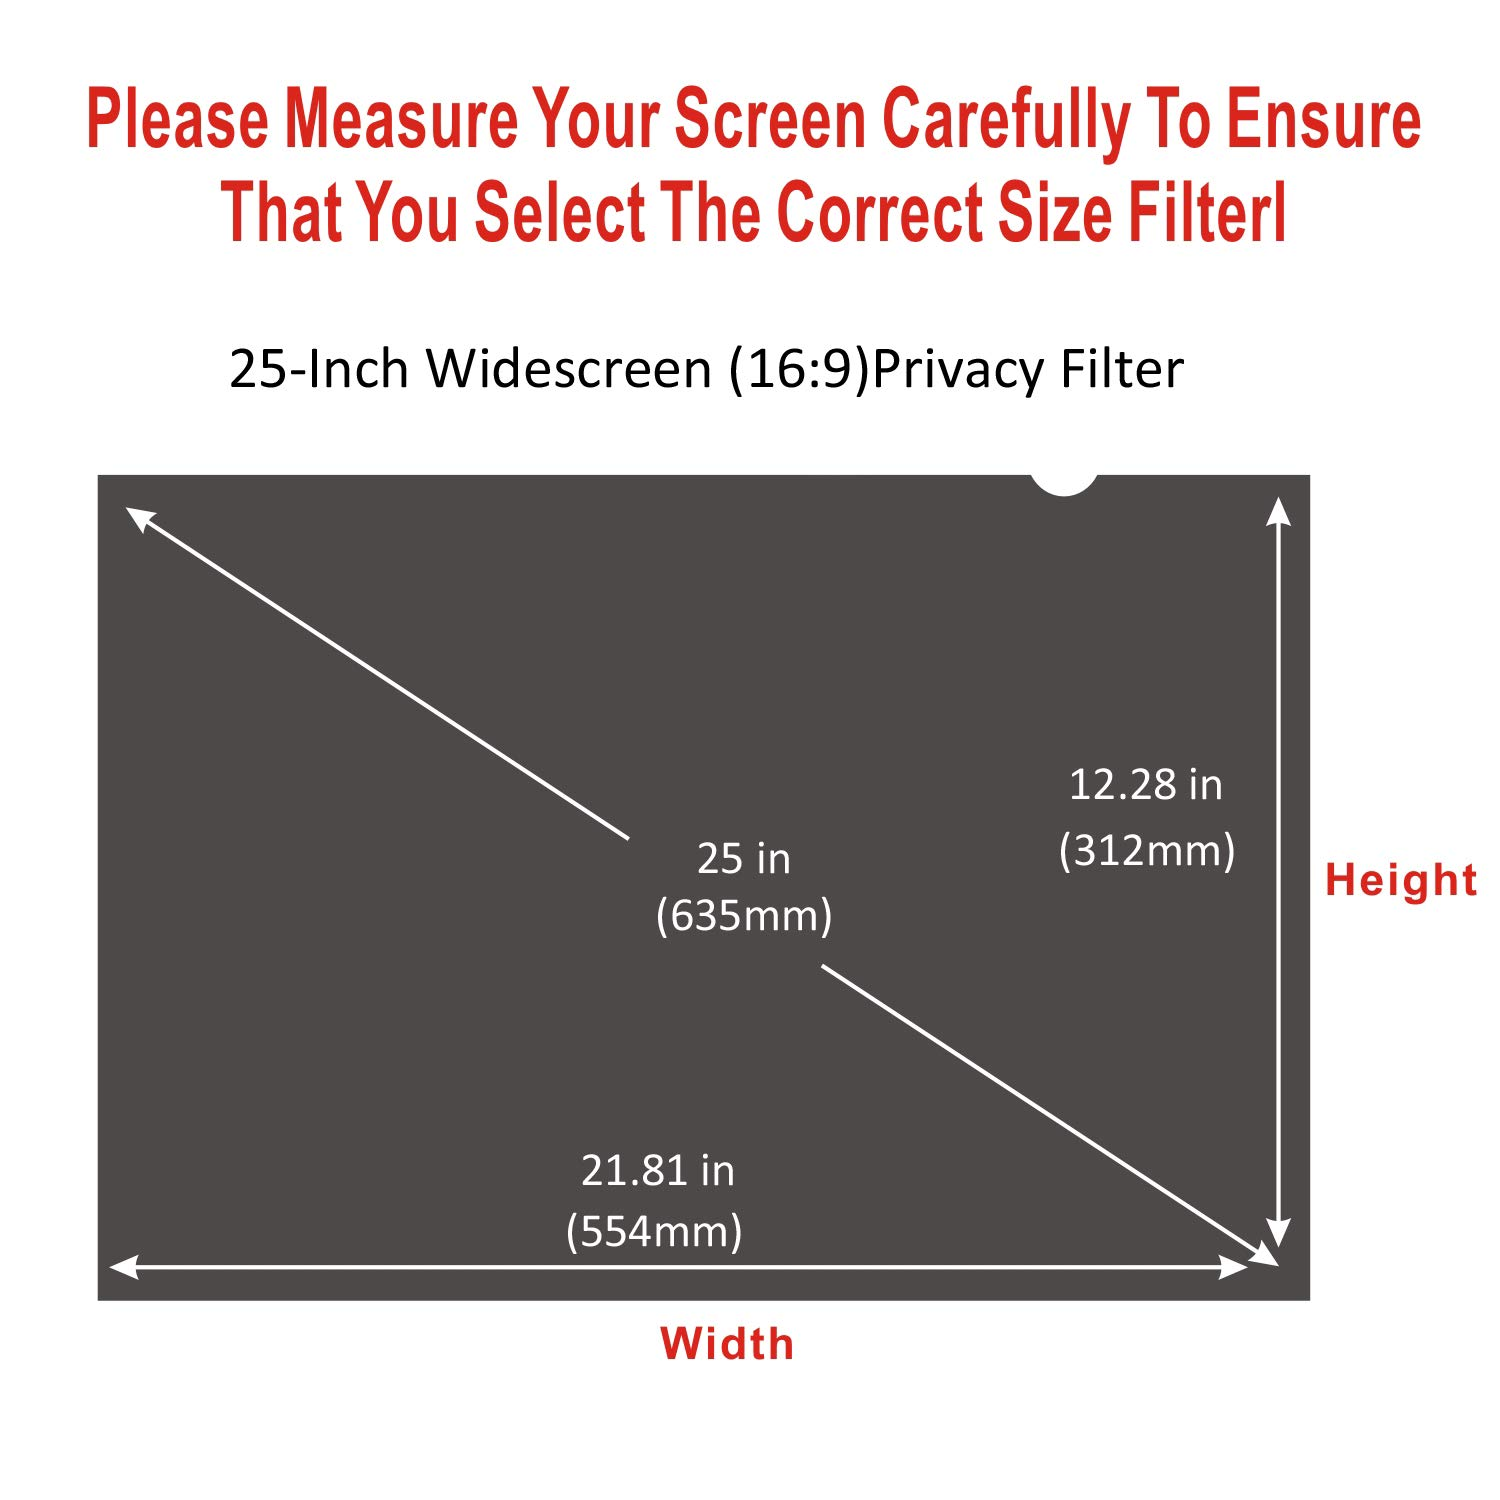 Accgonon Computer Privacy Screen Filters for 25-inch Widescreen(16:9) Monitor Privacy Screen Protector,Anti-Glare Anti-Spy Anti-Blue Scratch and UV Protection,Easy Install by ACCGONON (Image #6)